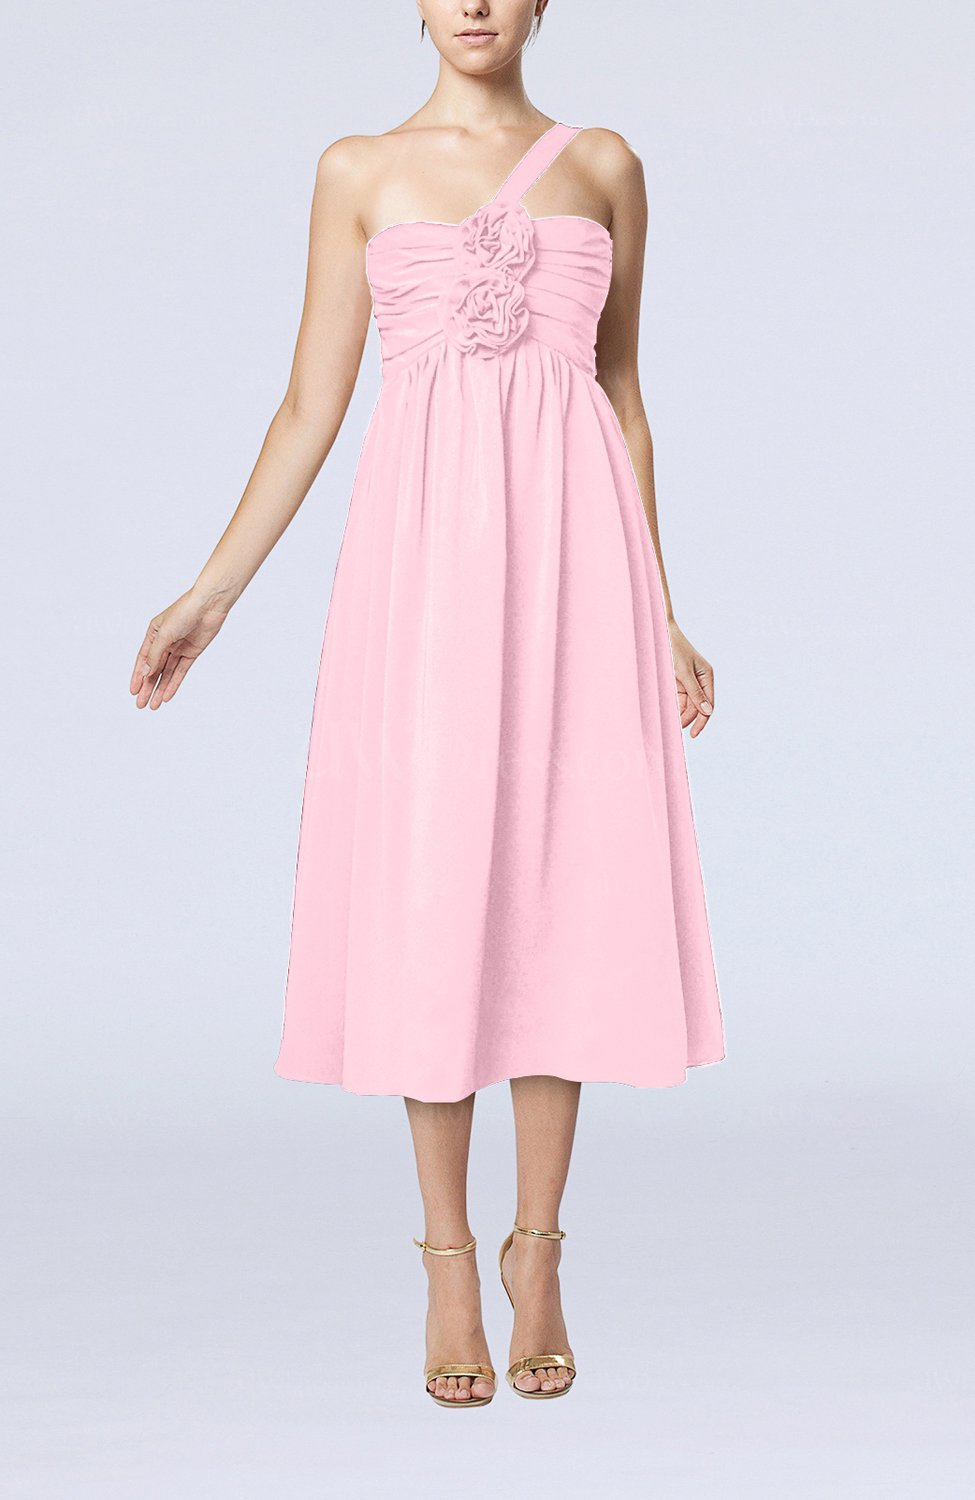 One Shoulder Dress For Wedding Guest Joswen Dresses For Weddings And ...